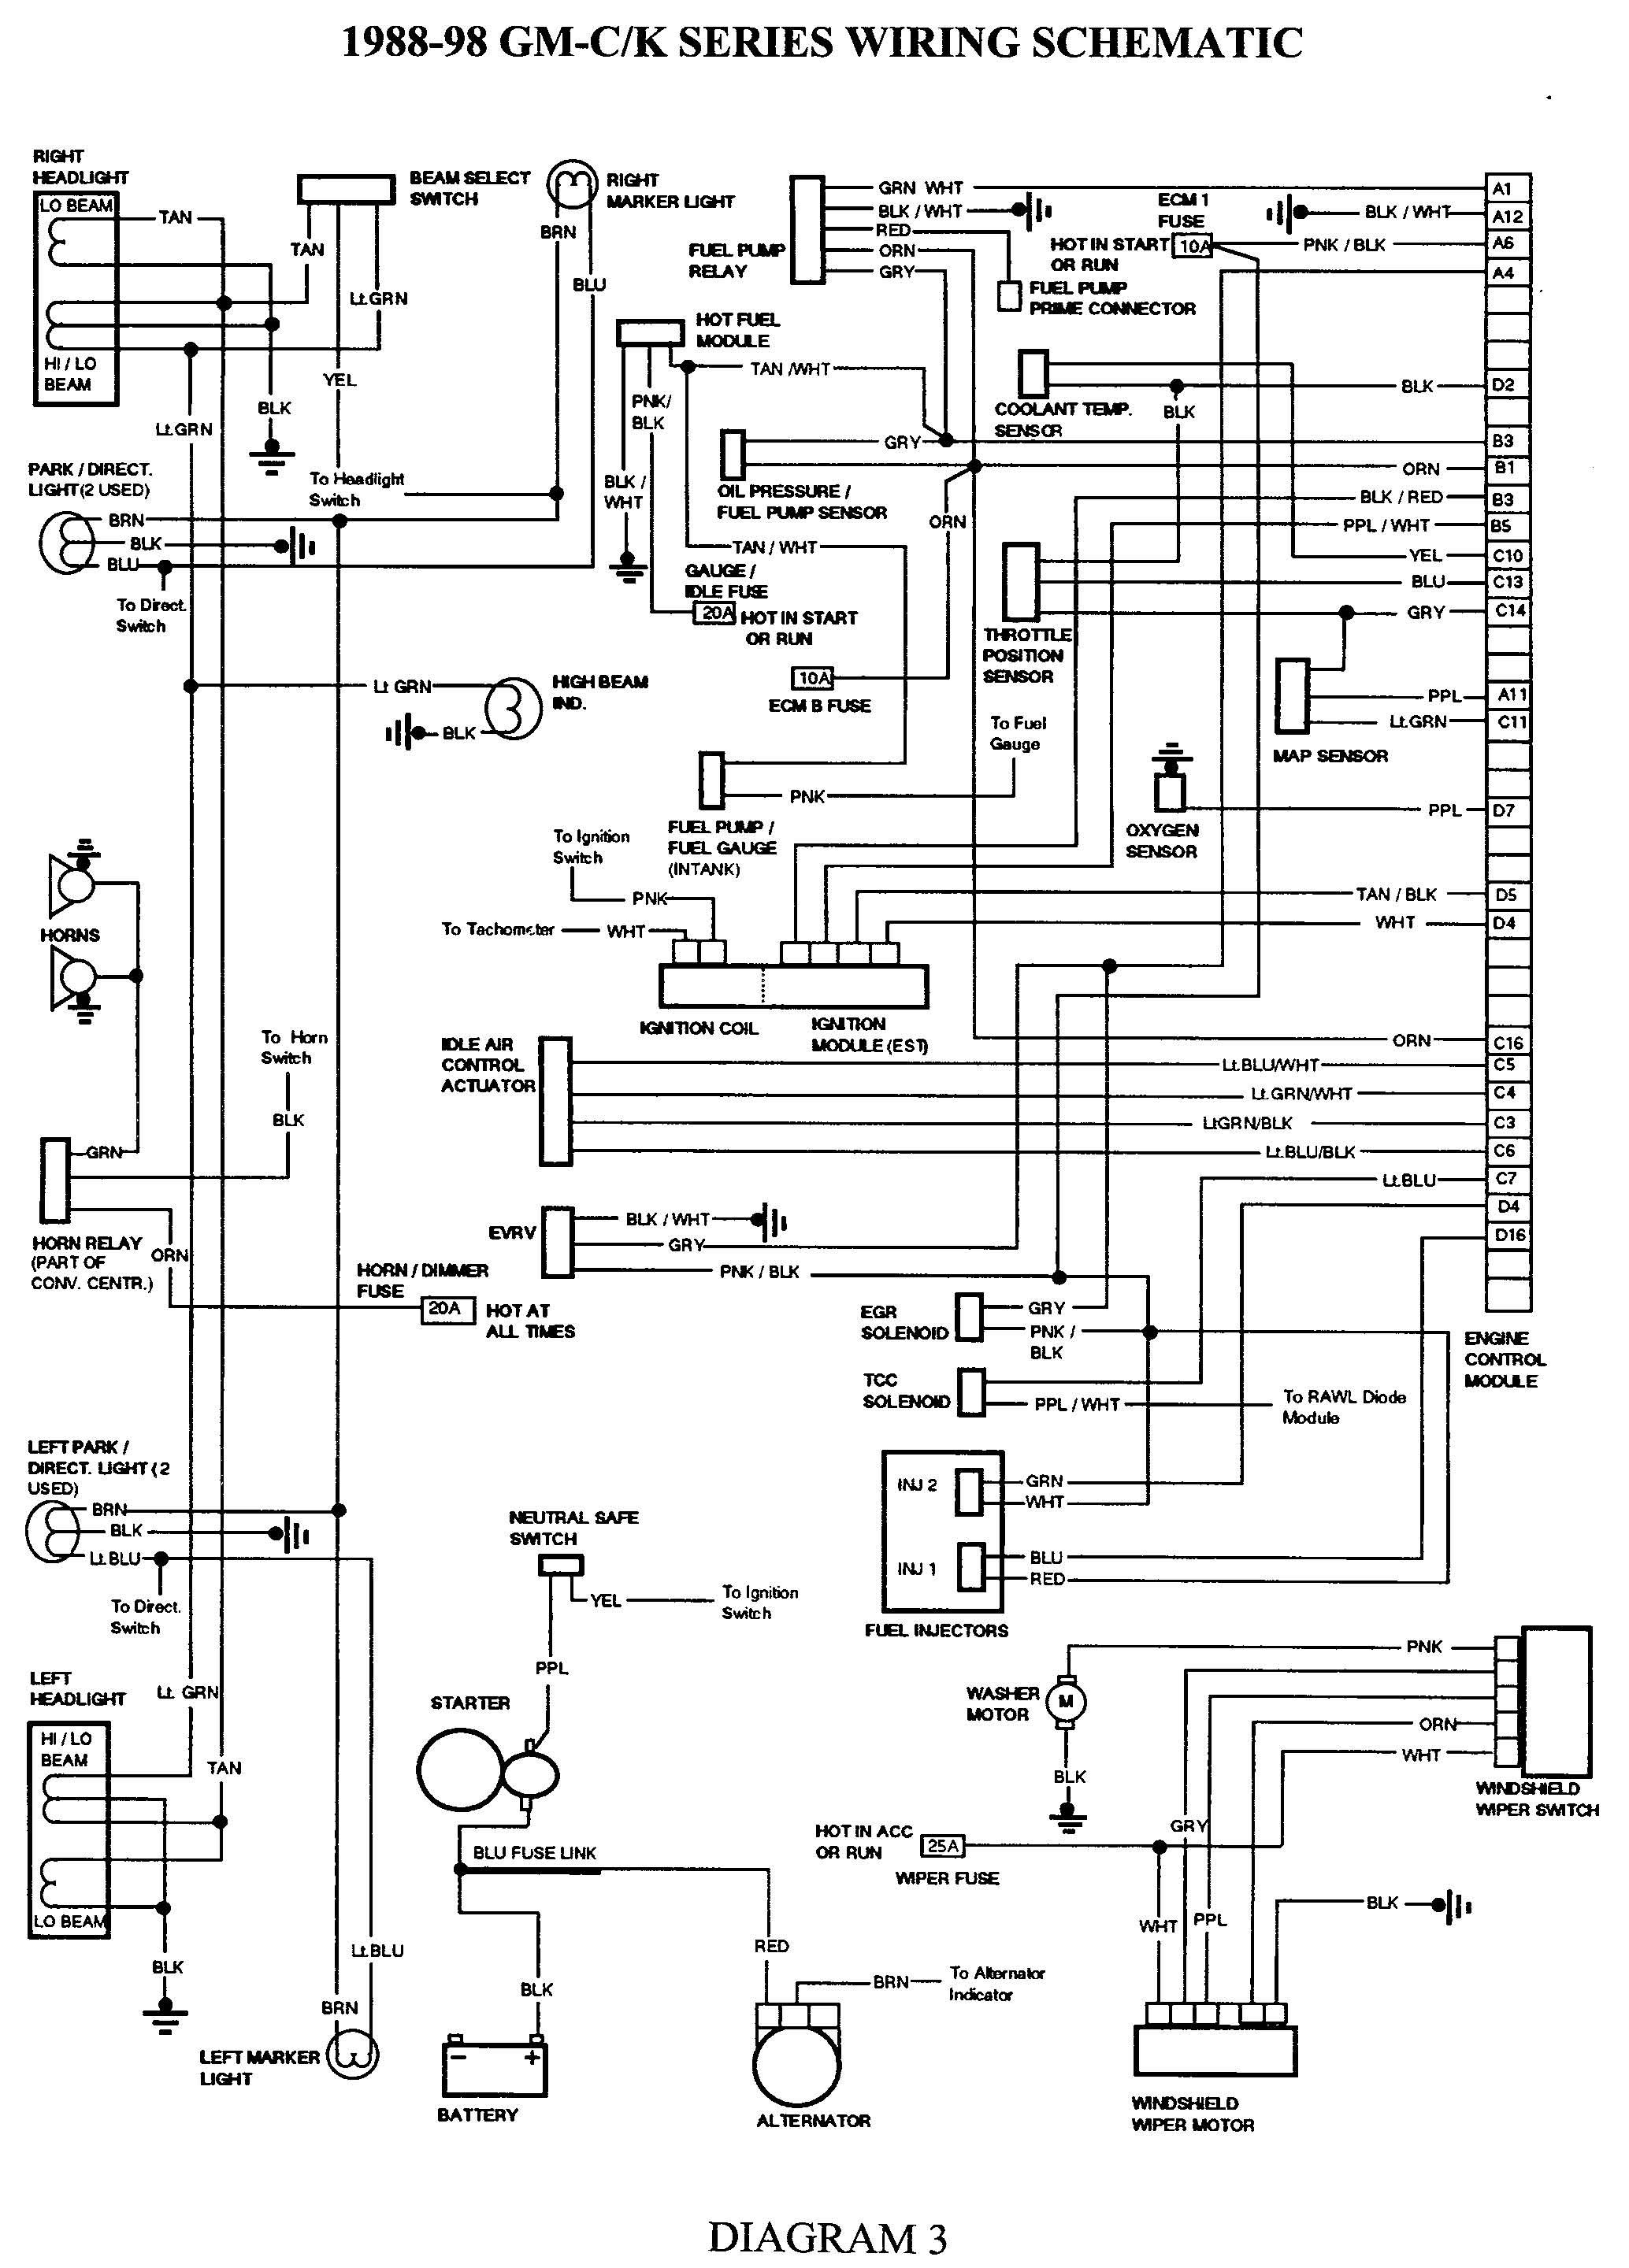 [SCHEMATICS_4FD]  Pin on kc | Fuse Box Diagram For A 1989 Chevy K2500 4x4 |  | Pinterest